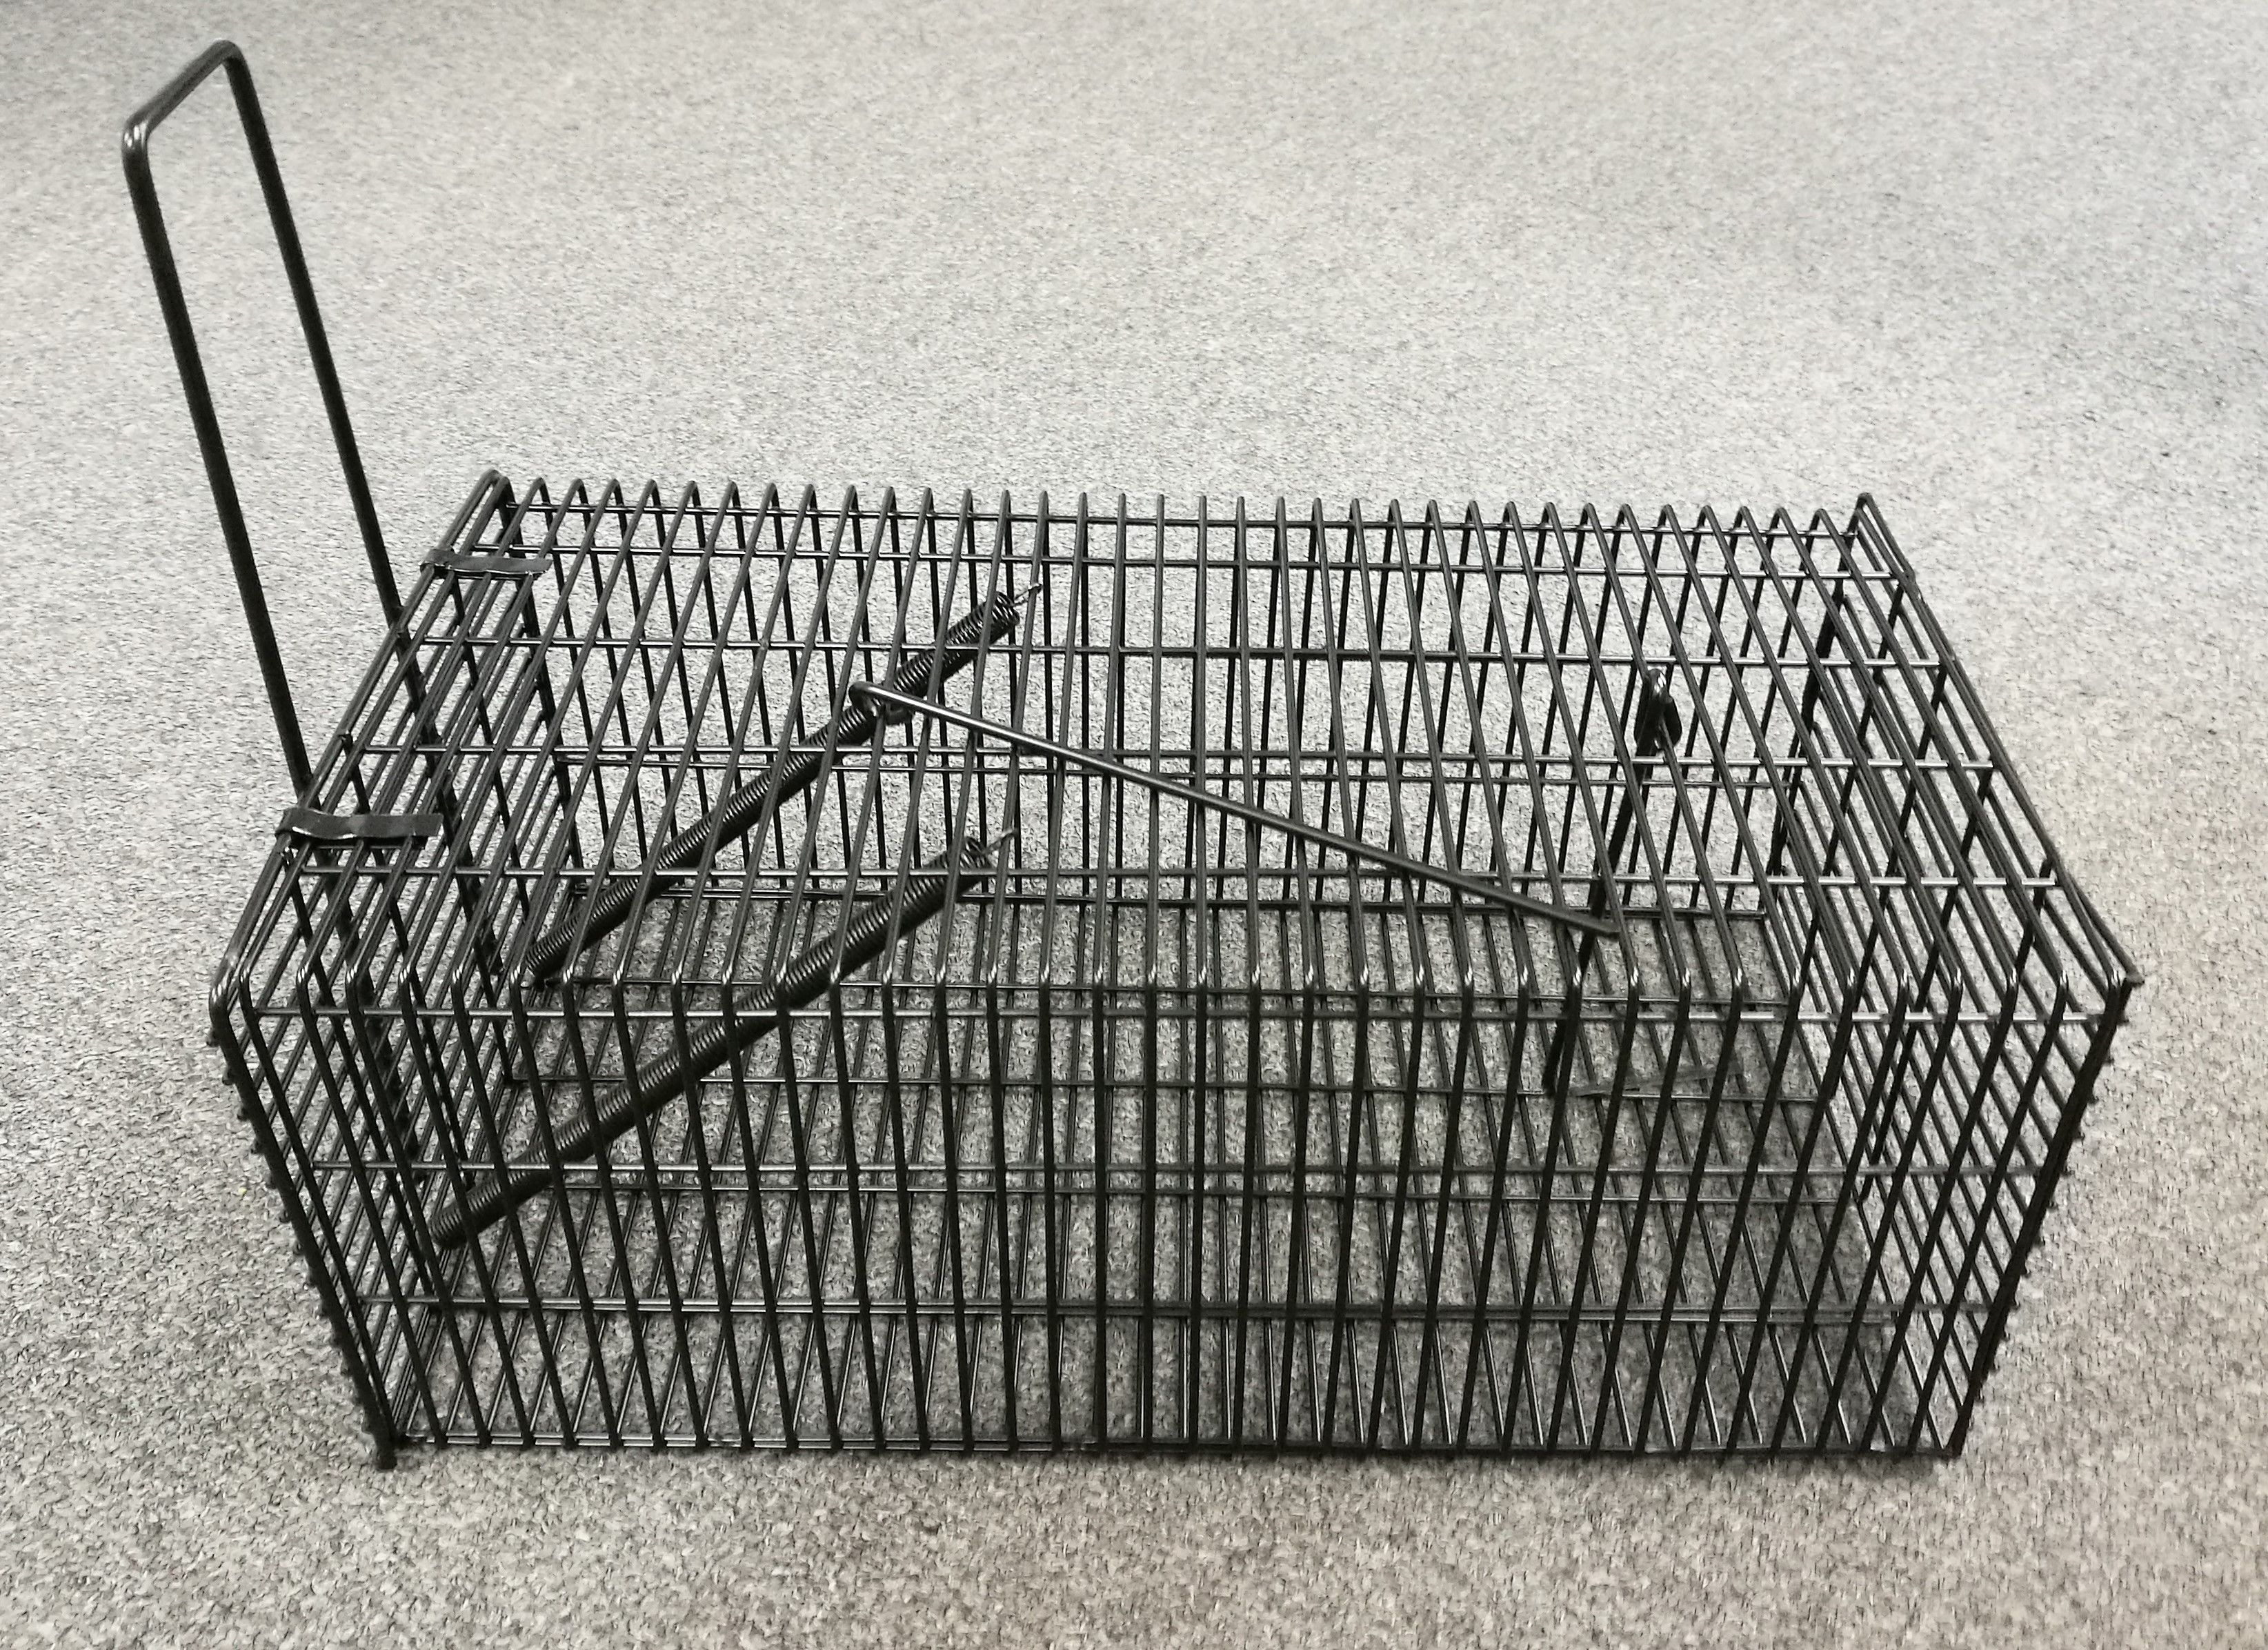 Black Rat Trap/Cage Black rat, Rat traps, Rats